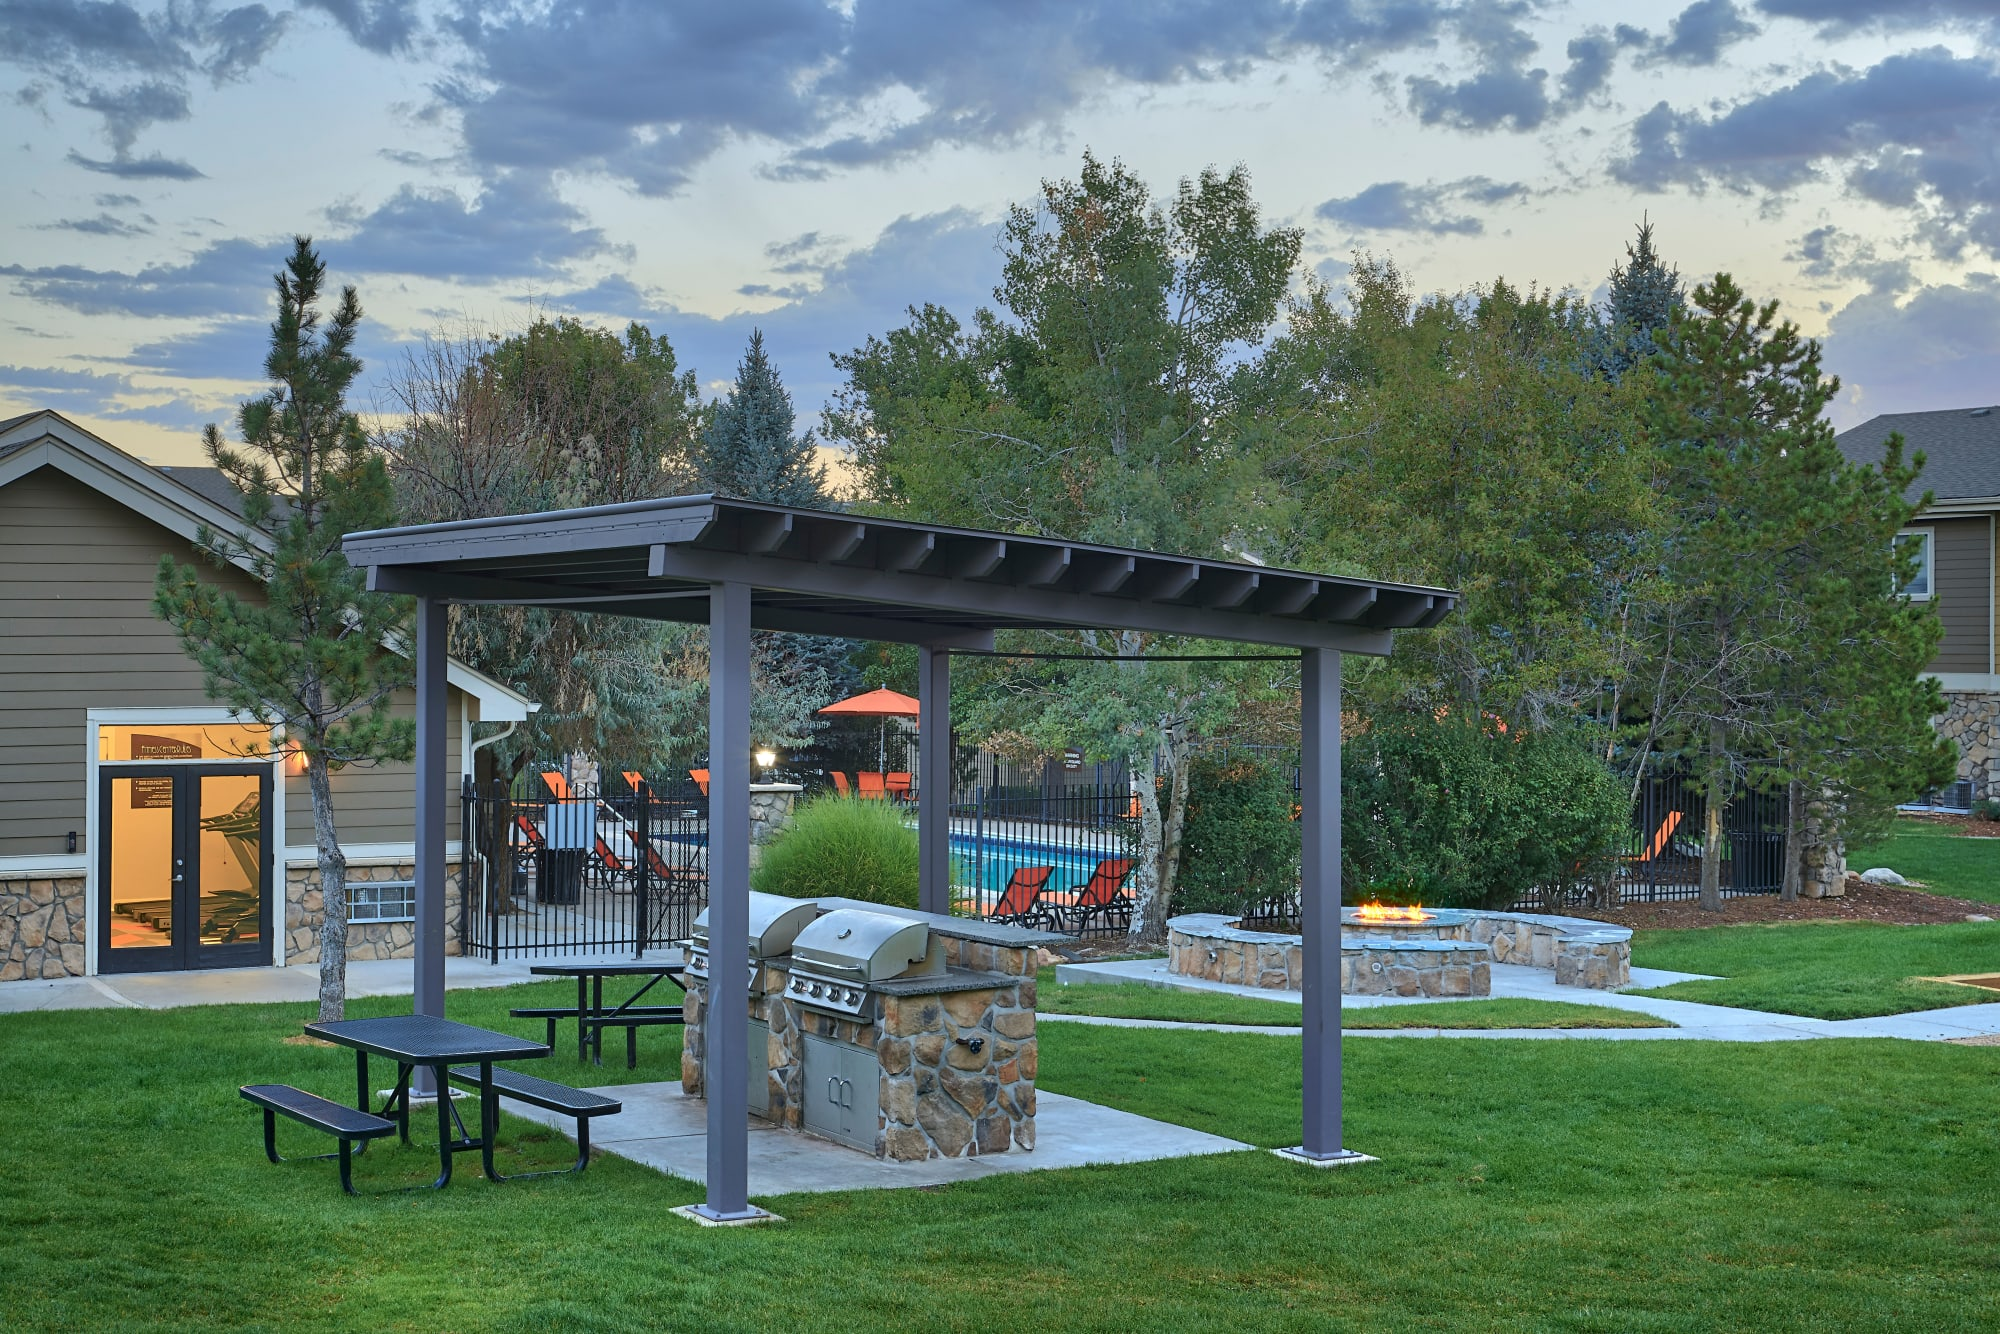 The fire pit lounge and covered bbq area at Crossroads at City Center Apartments in Aurora, Colorado